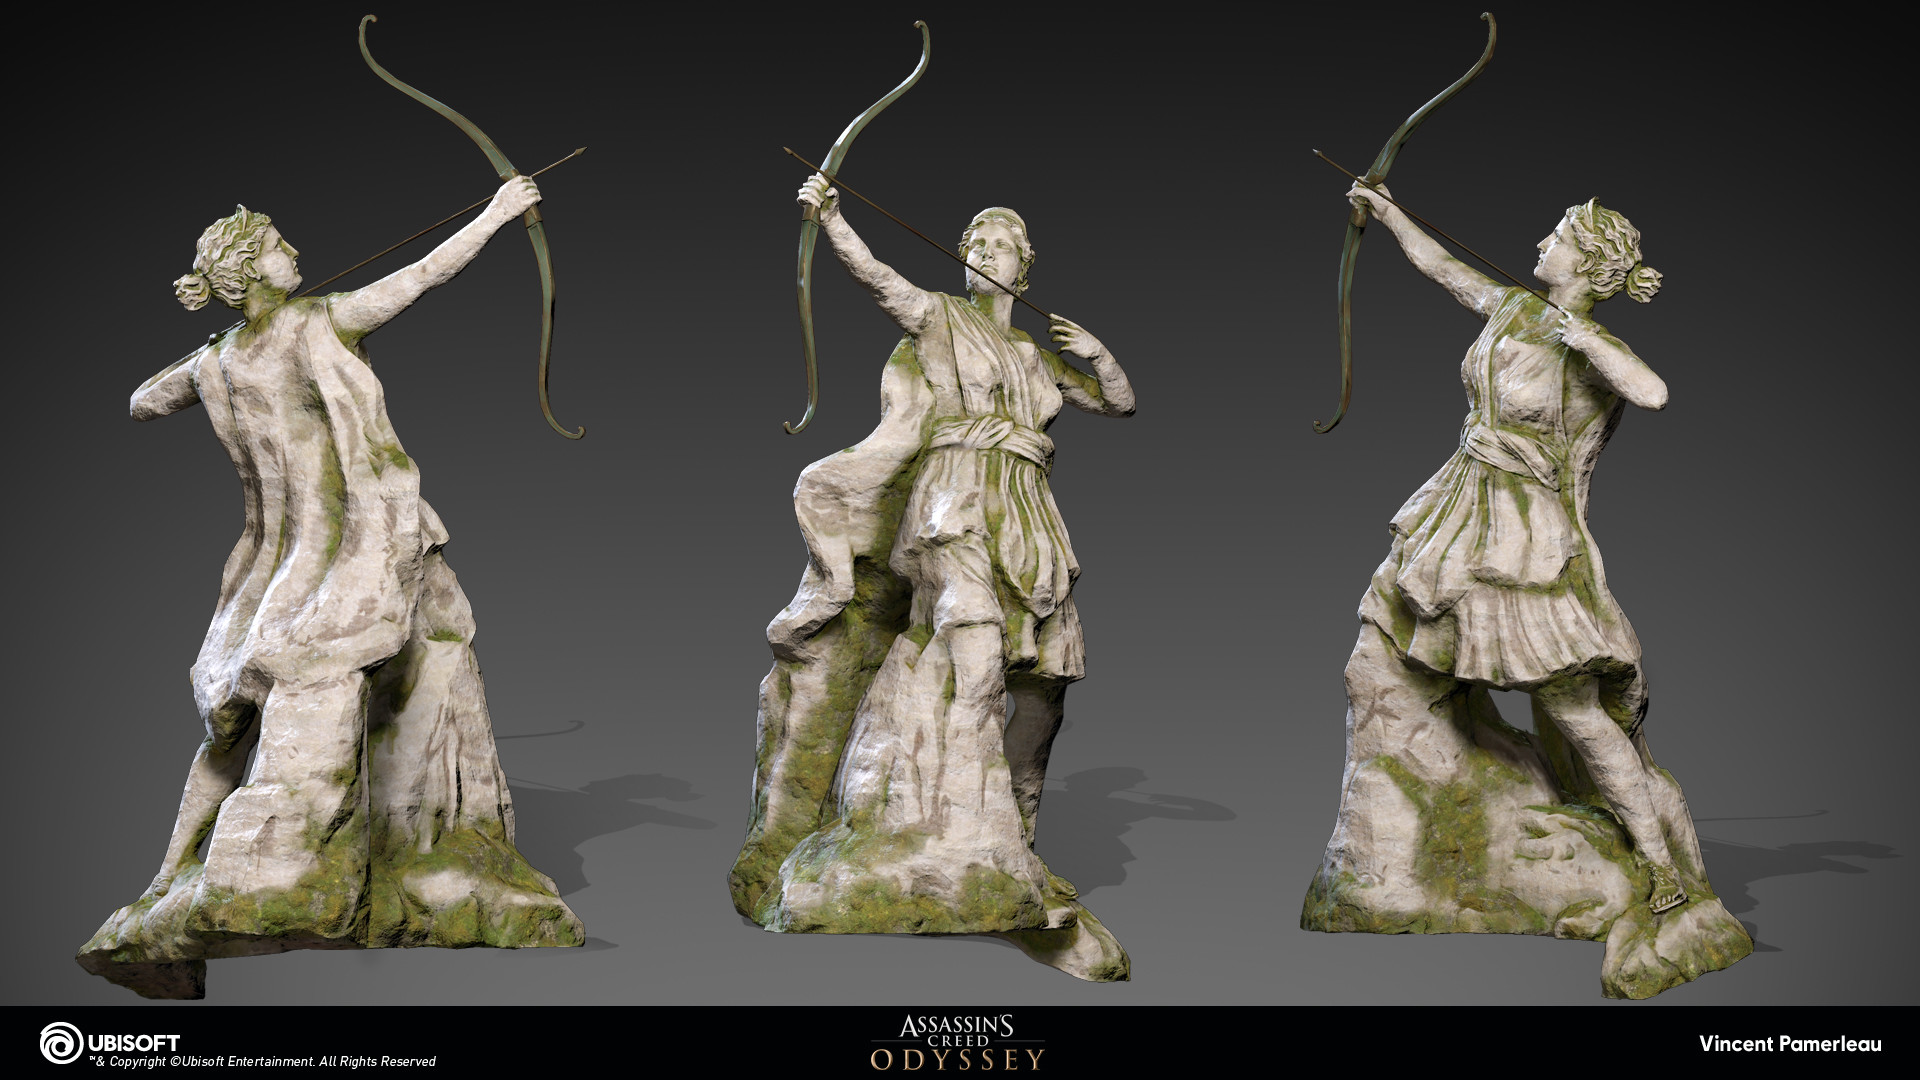 Artstation Assassin S Creed Odyssey Statues Vincent Pamerleau